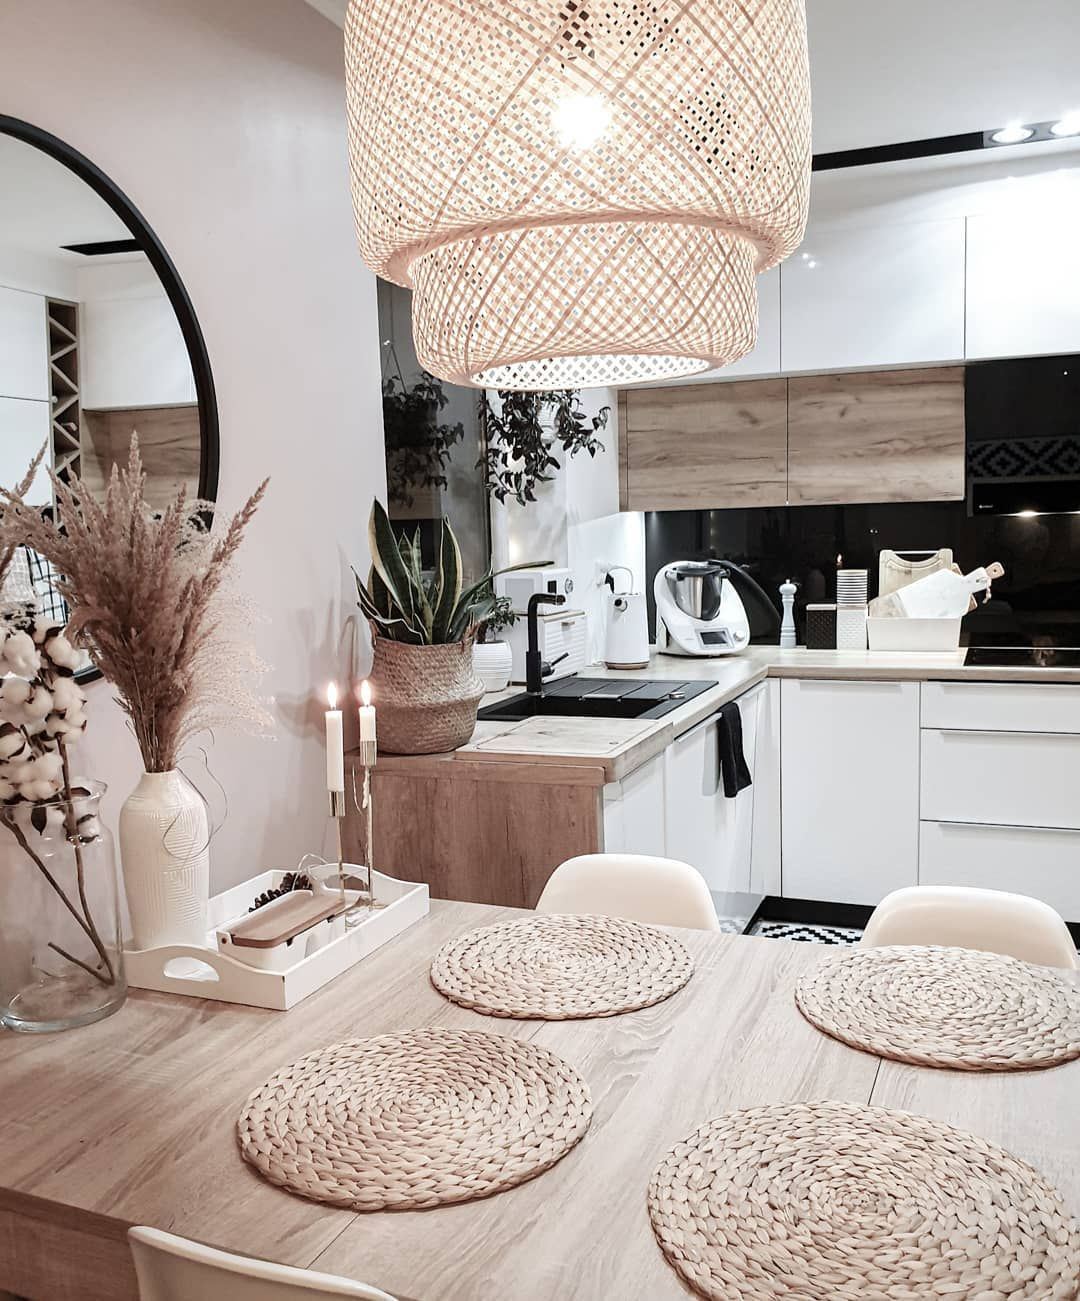 kitchen decoration If you have too much time what is being done Come on Online shoppi kitchen decoration If you have too much time what is being done Come on Online shopp...